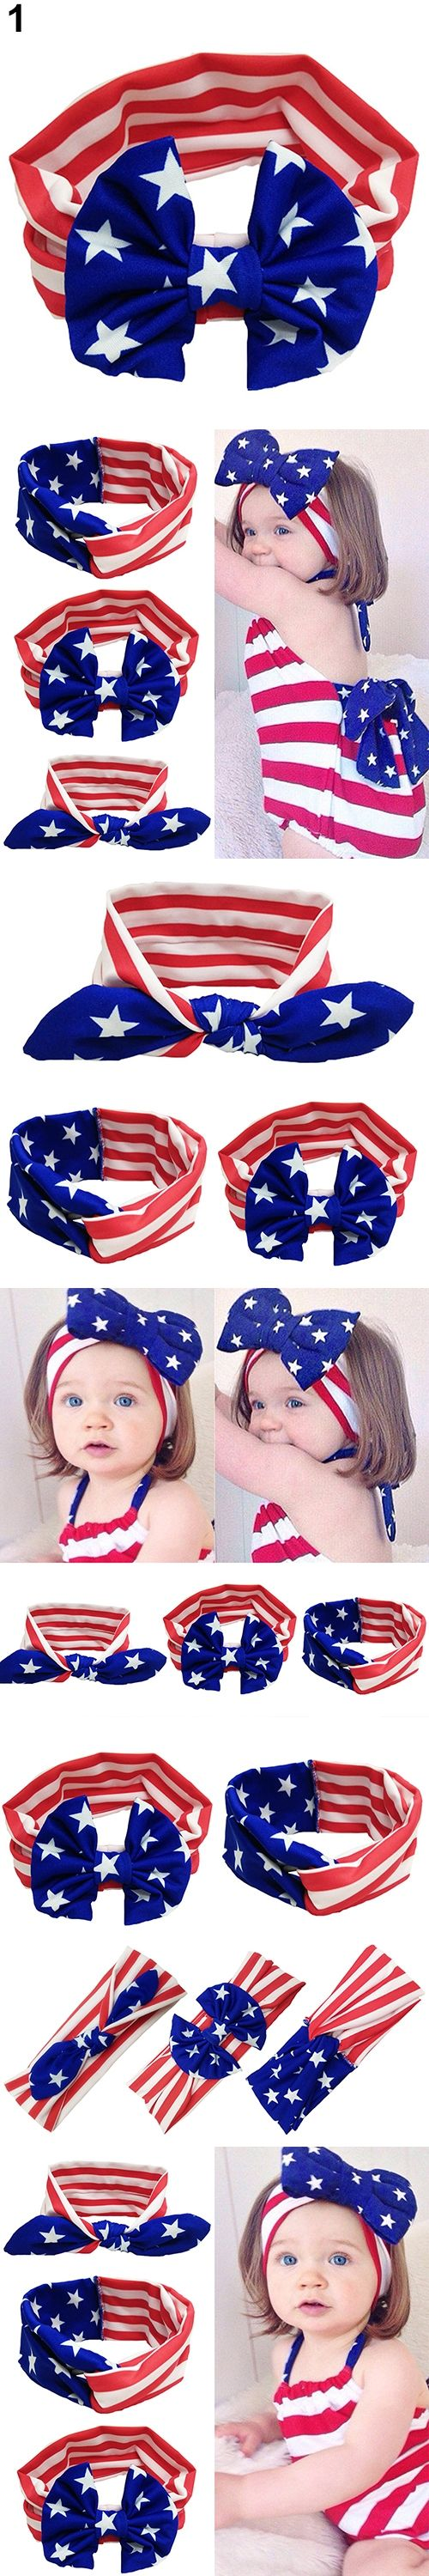 2016 New  American Flag Pattern Rabbit Ears Bowknot Cross Elastic Headband